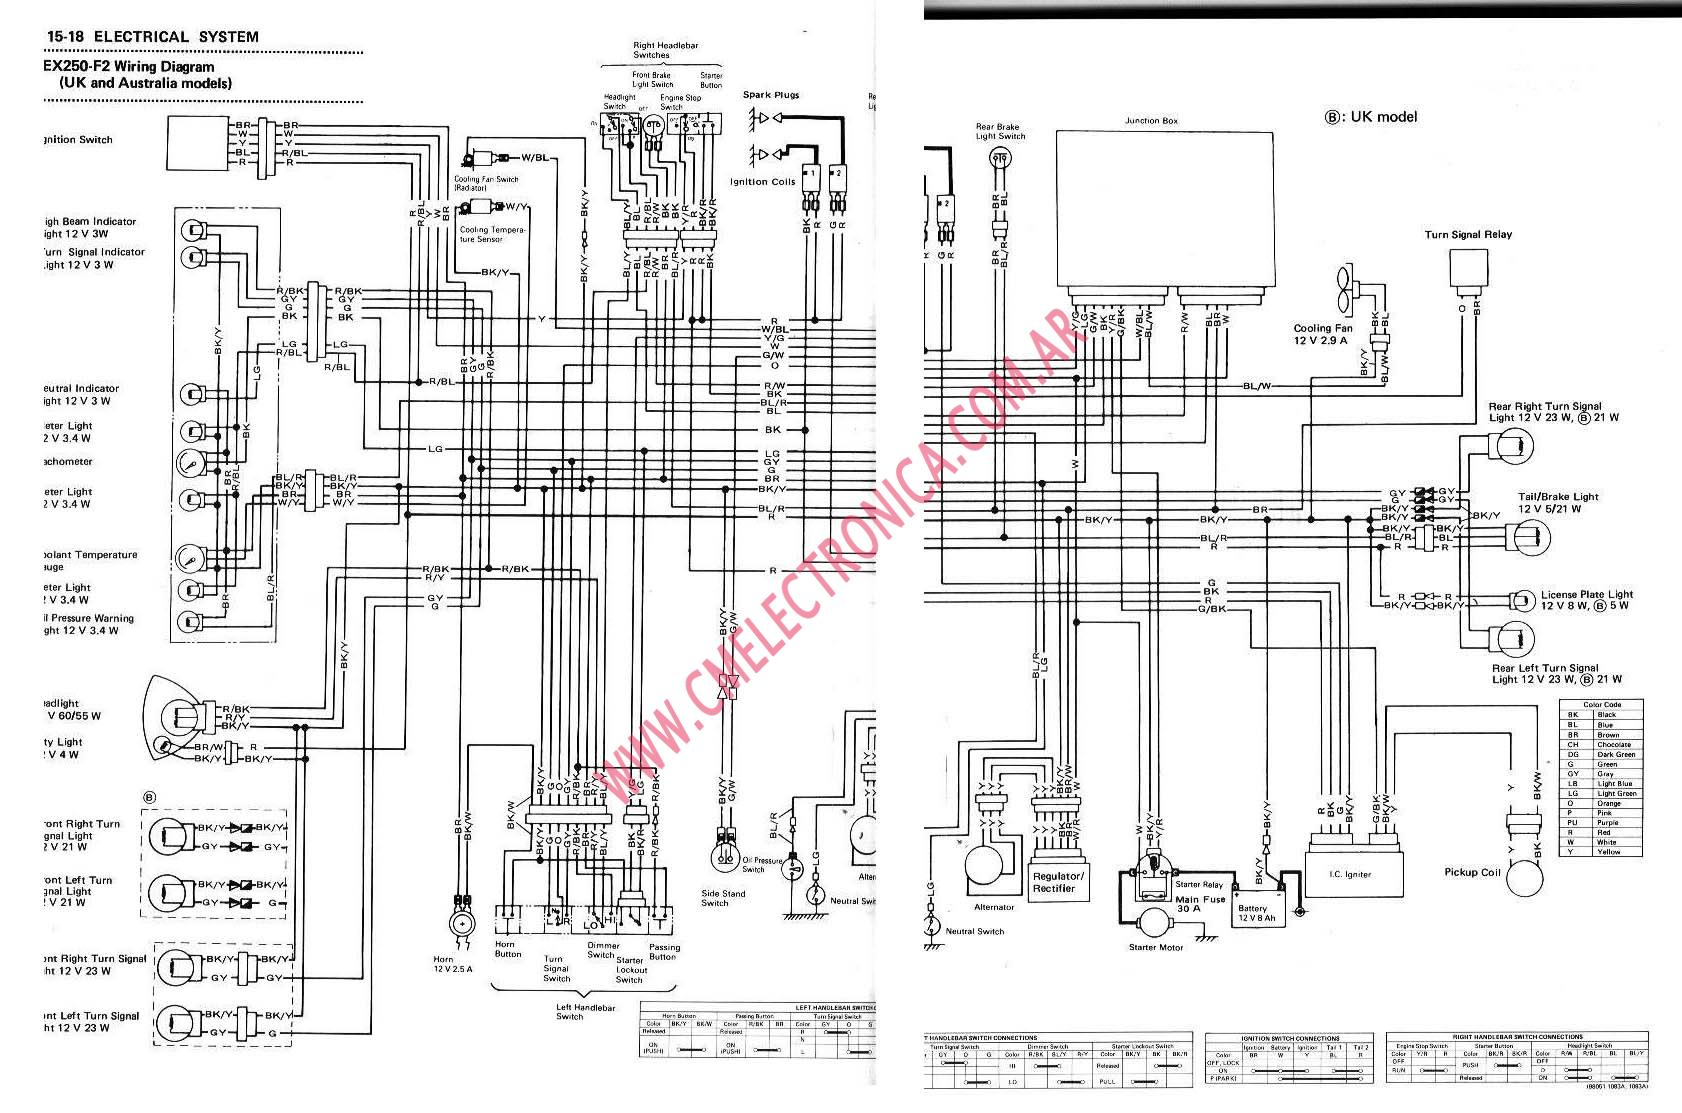 Ford 4600 Tractor Fuse Box together with Chevy 2 4 Liter Engine Diagram together with 2015 Vw Jetta Tdi Fuse Box together with Engine management system  ponent location from 99my additionally 1999 Vw Beetle Wiring Diagram. on fuse box engine